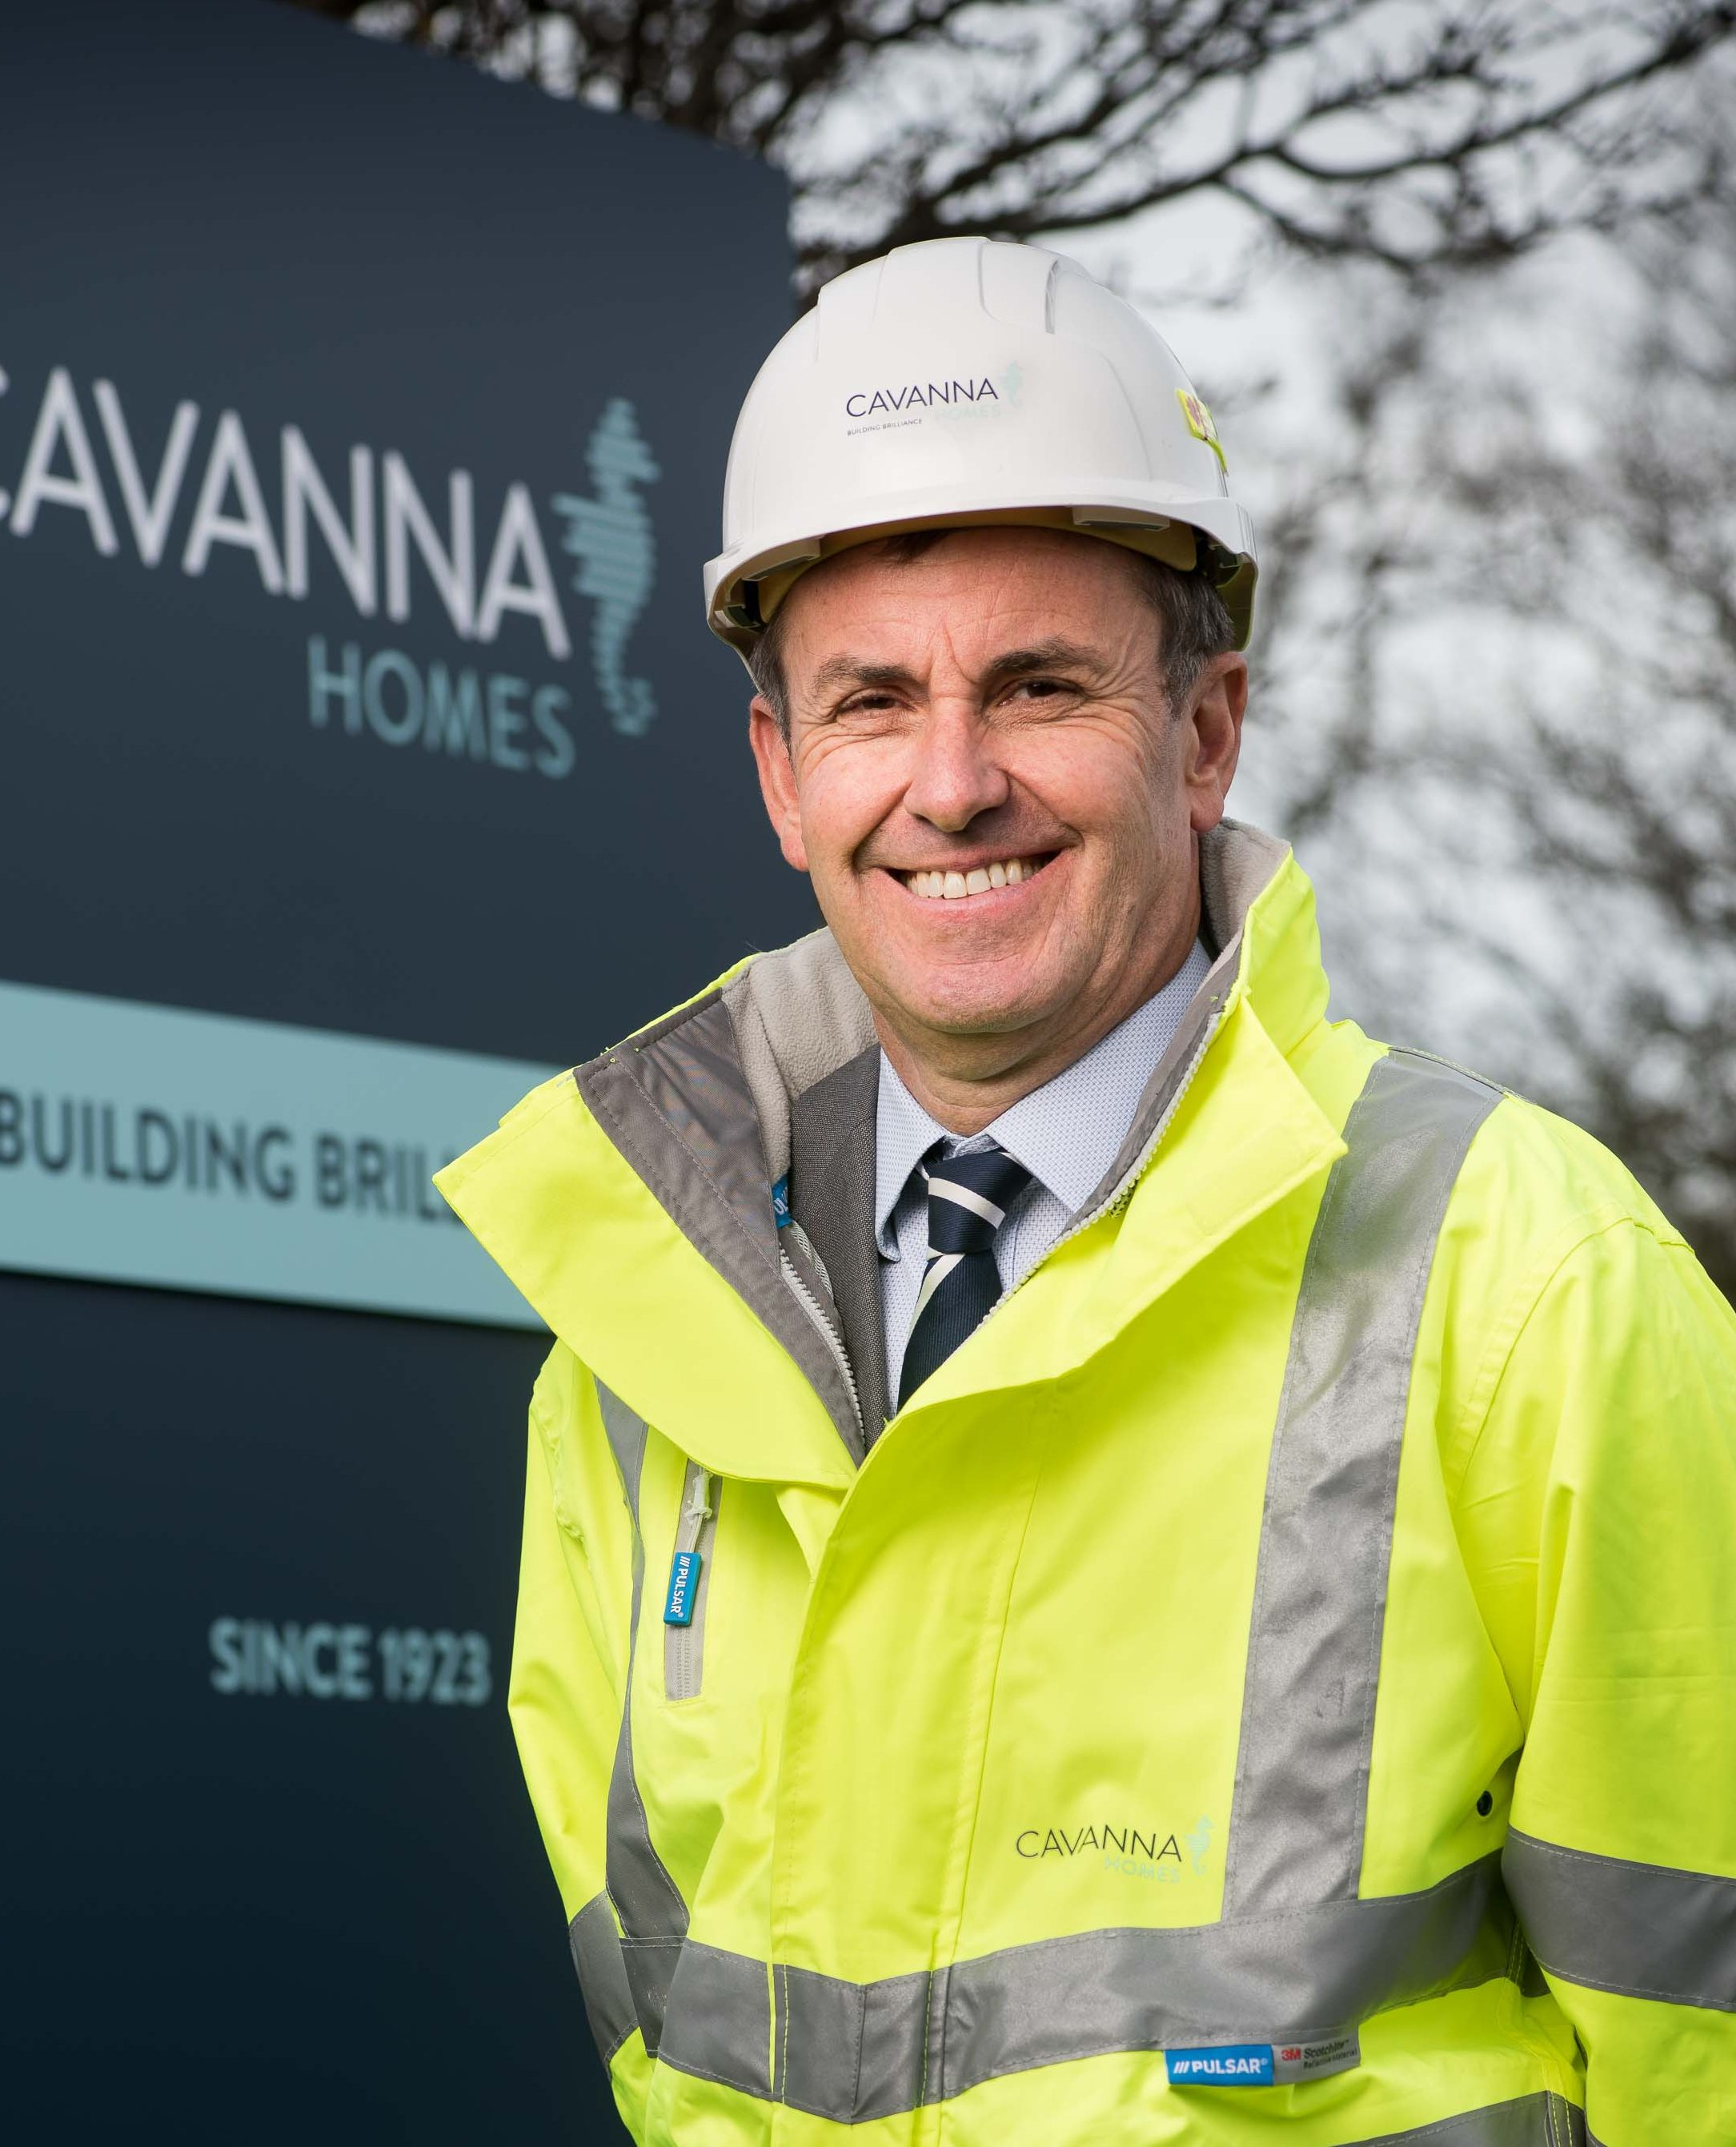 Cavanna Homes Appoint New Head of Operations